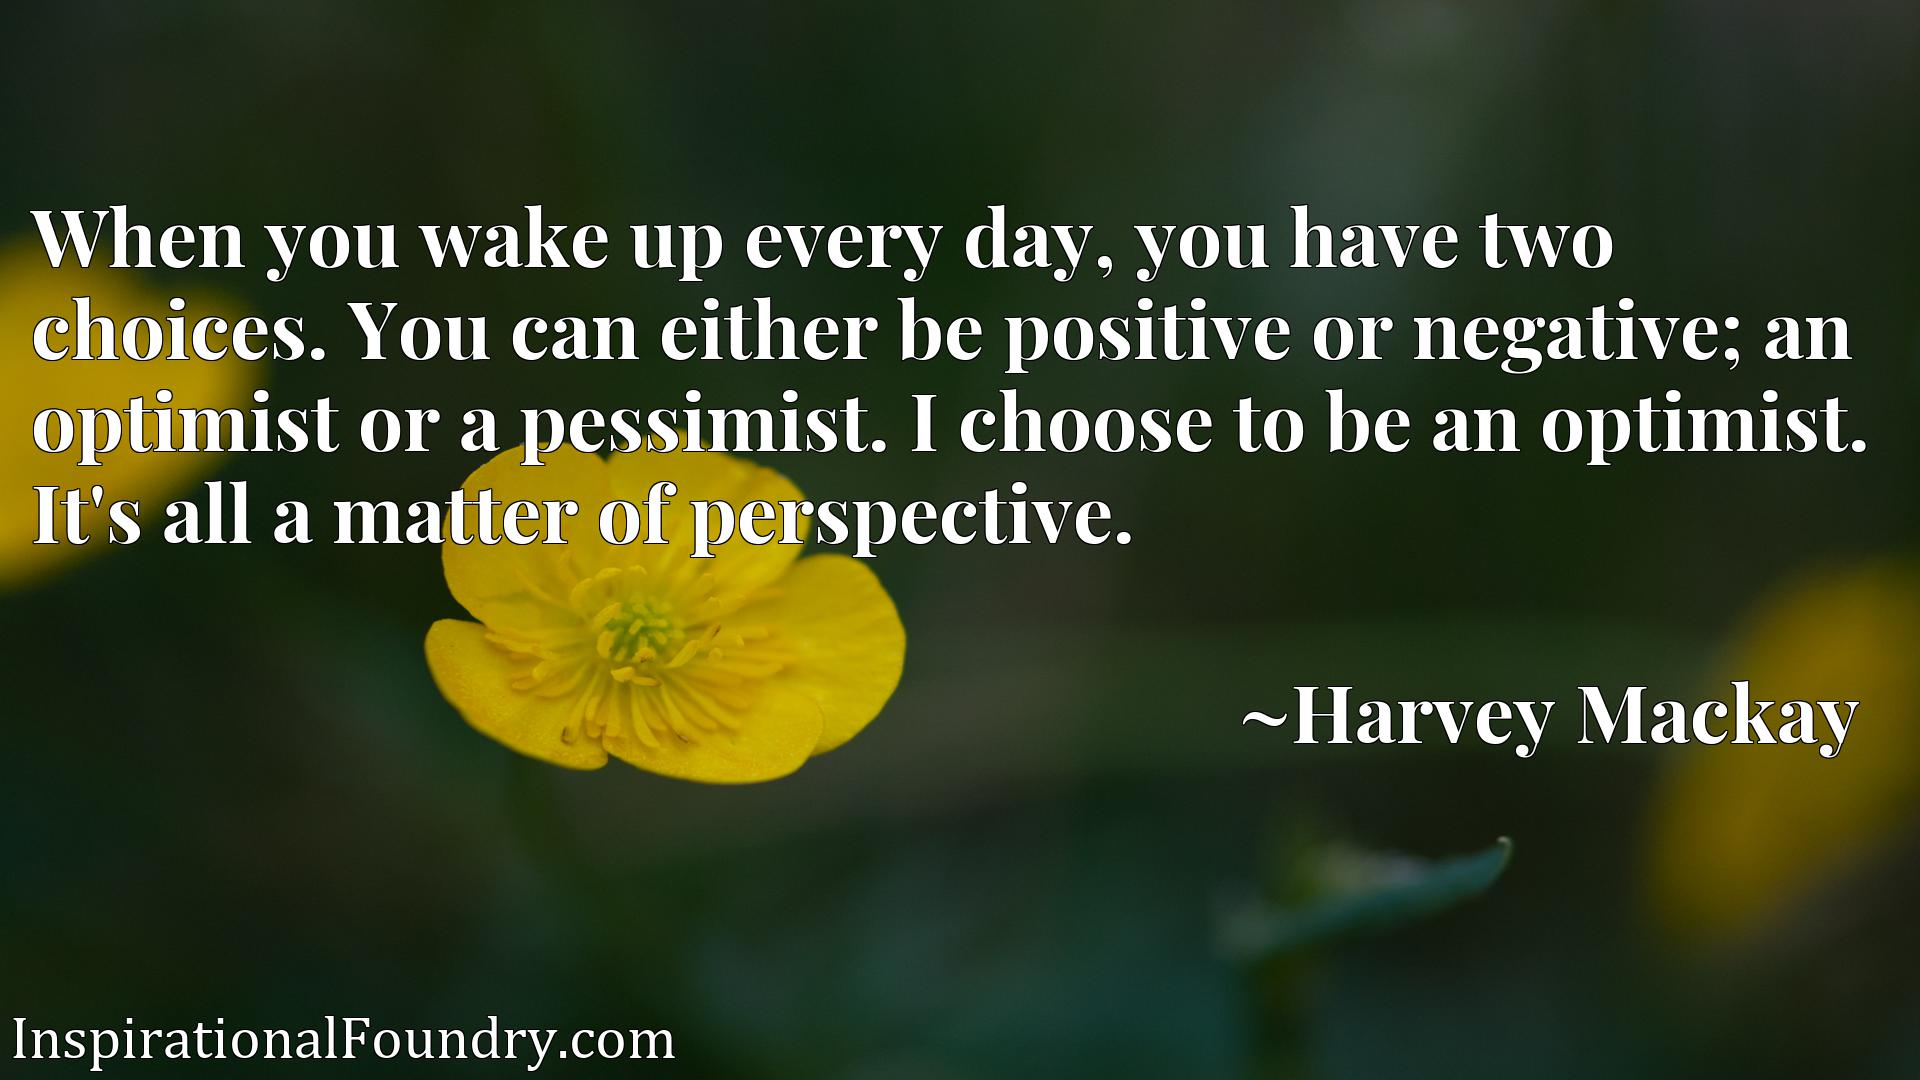 Quote Picture :When you wake up every day, you have two choices. You can either be positive or negative; an optimist or a pessimist. I choose to be an optimist. It's all a matter of perspective.